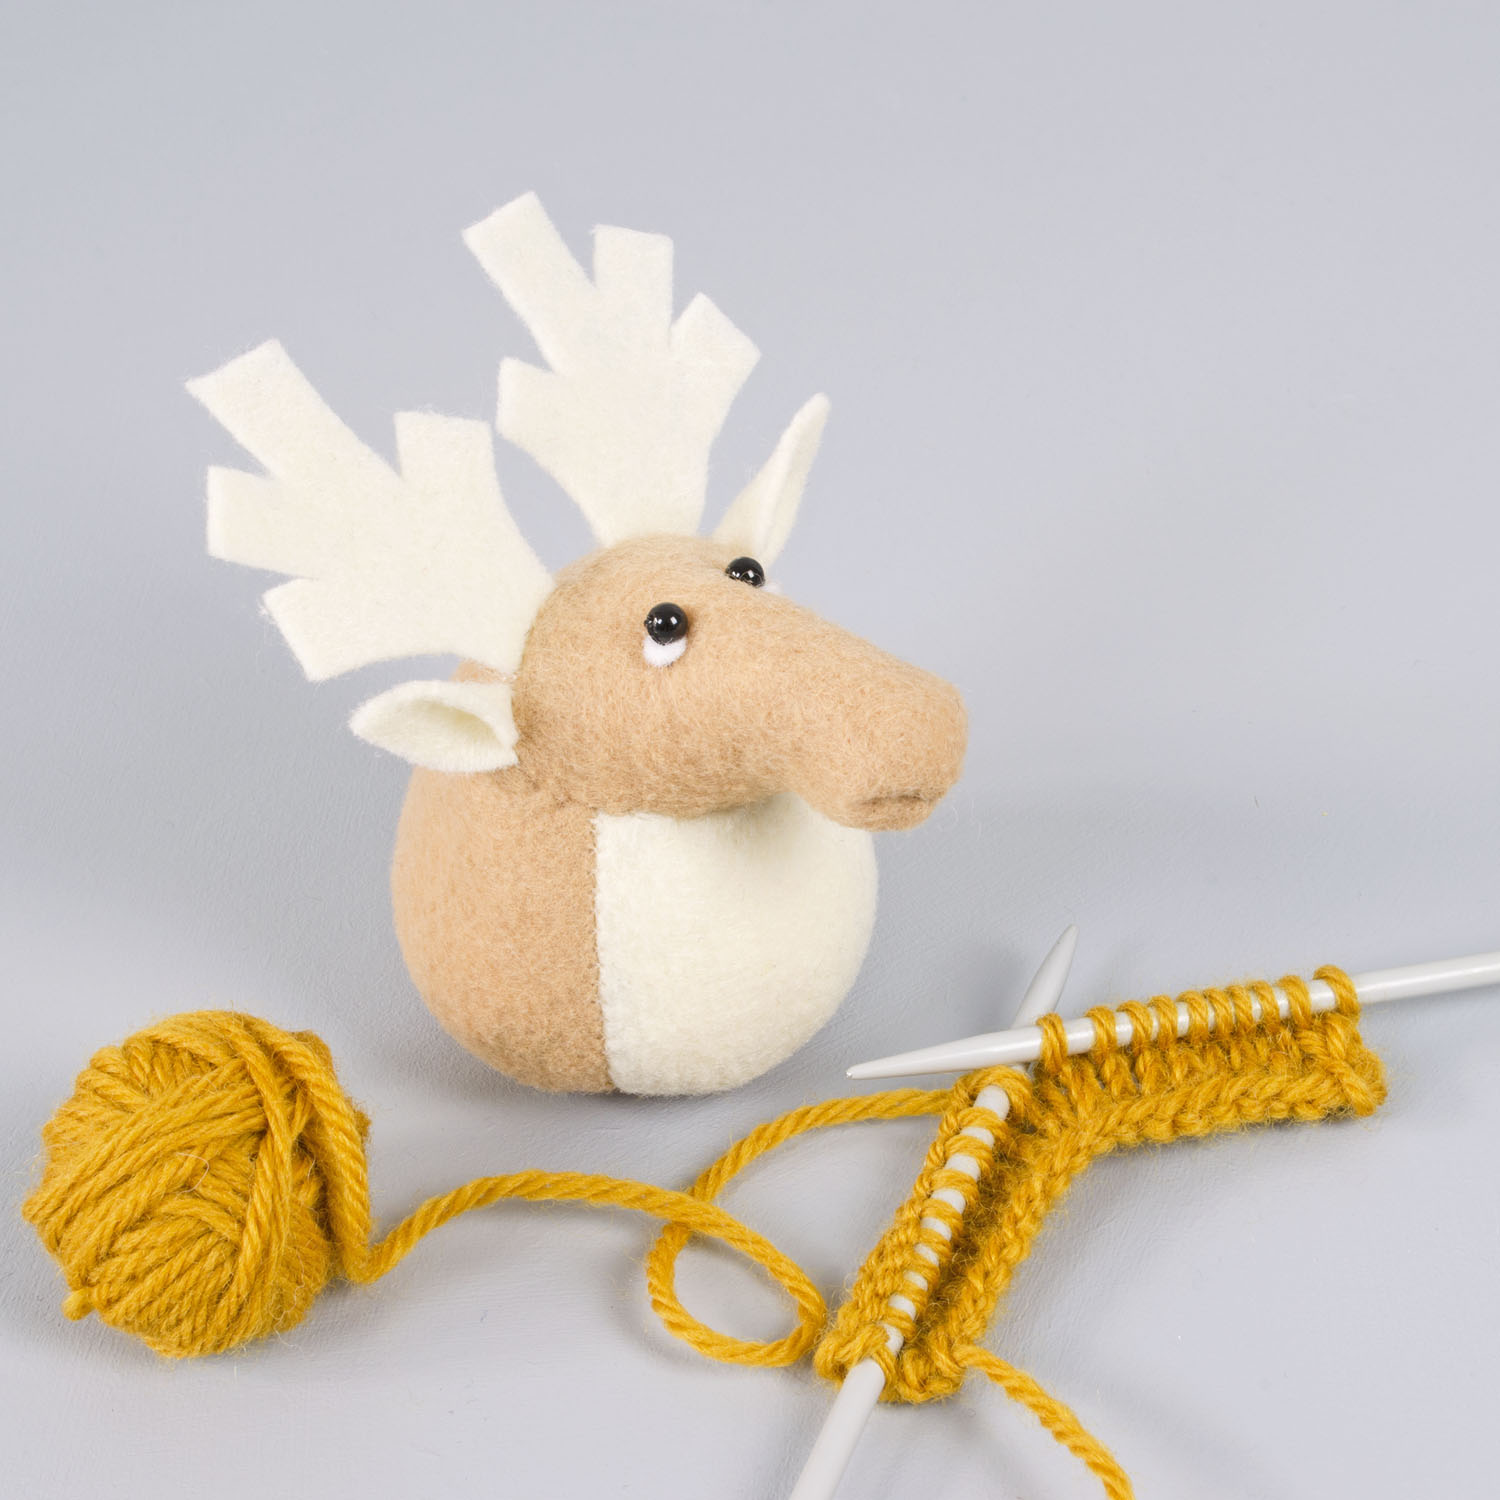 Rupert the Reindeer paperweight |handmade from eco felt made from plastic bottles | by Bilberry Woods.jpg